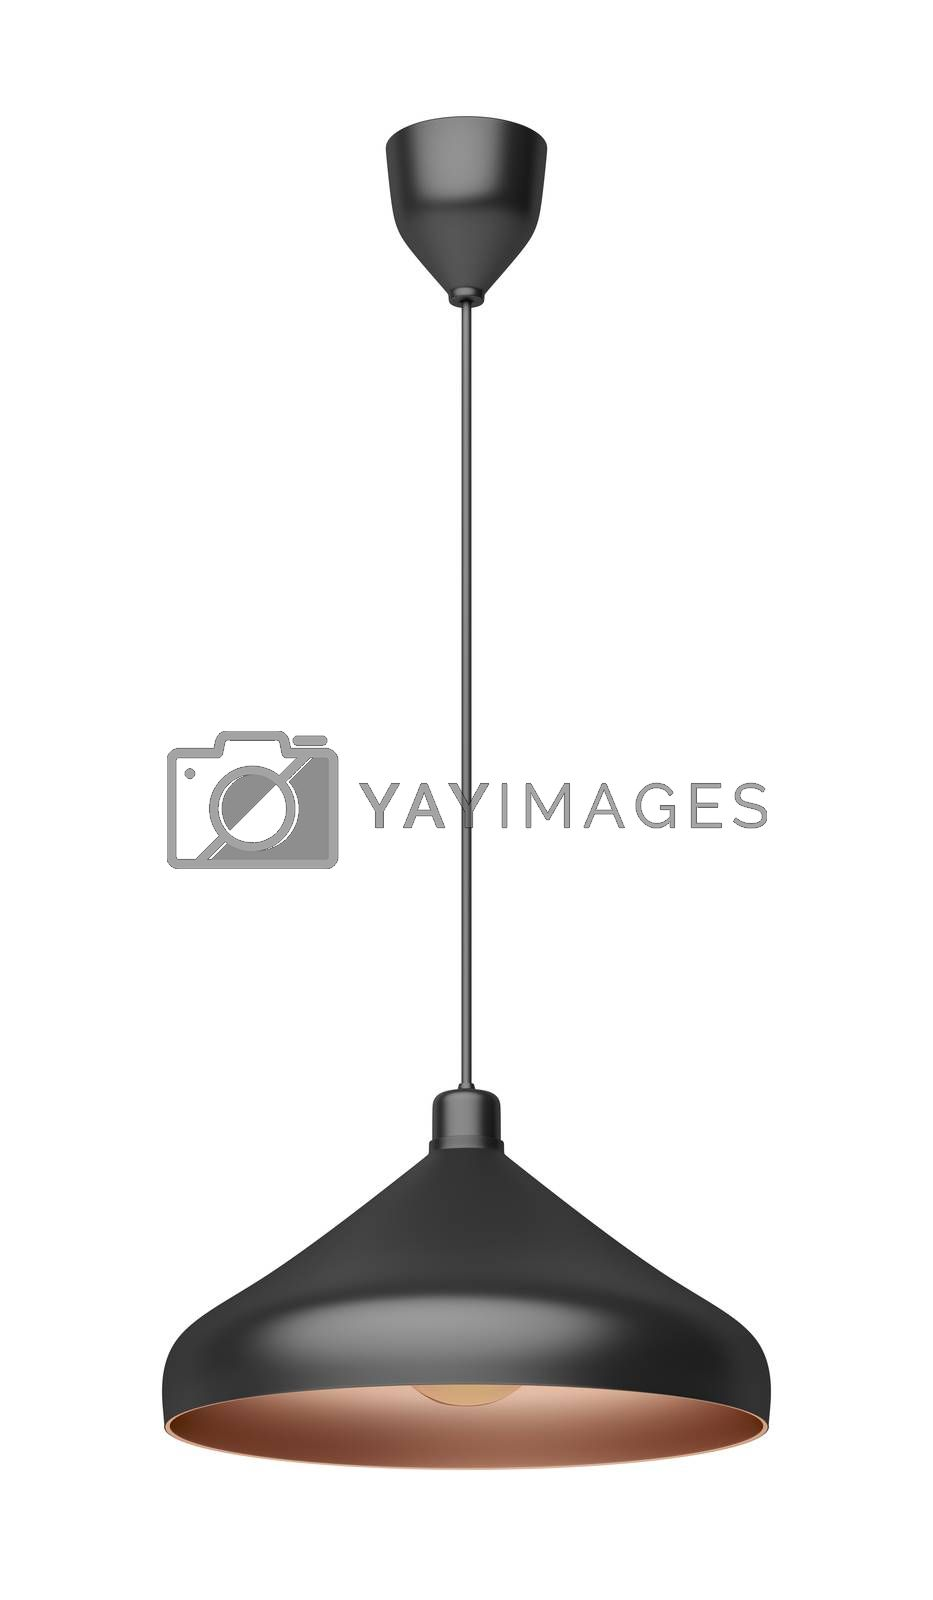 Modern pendant lamp with LED bulb, isolated on white background